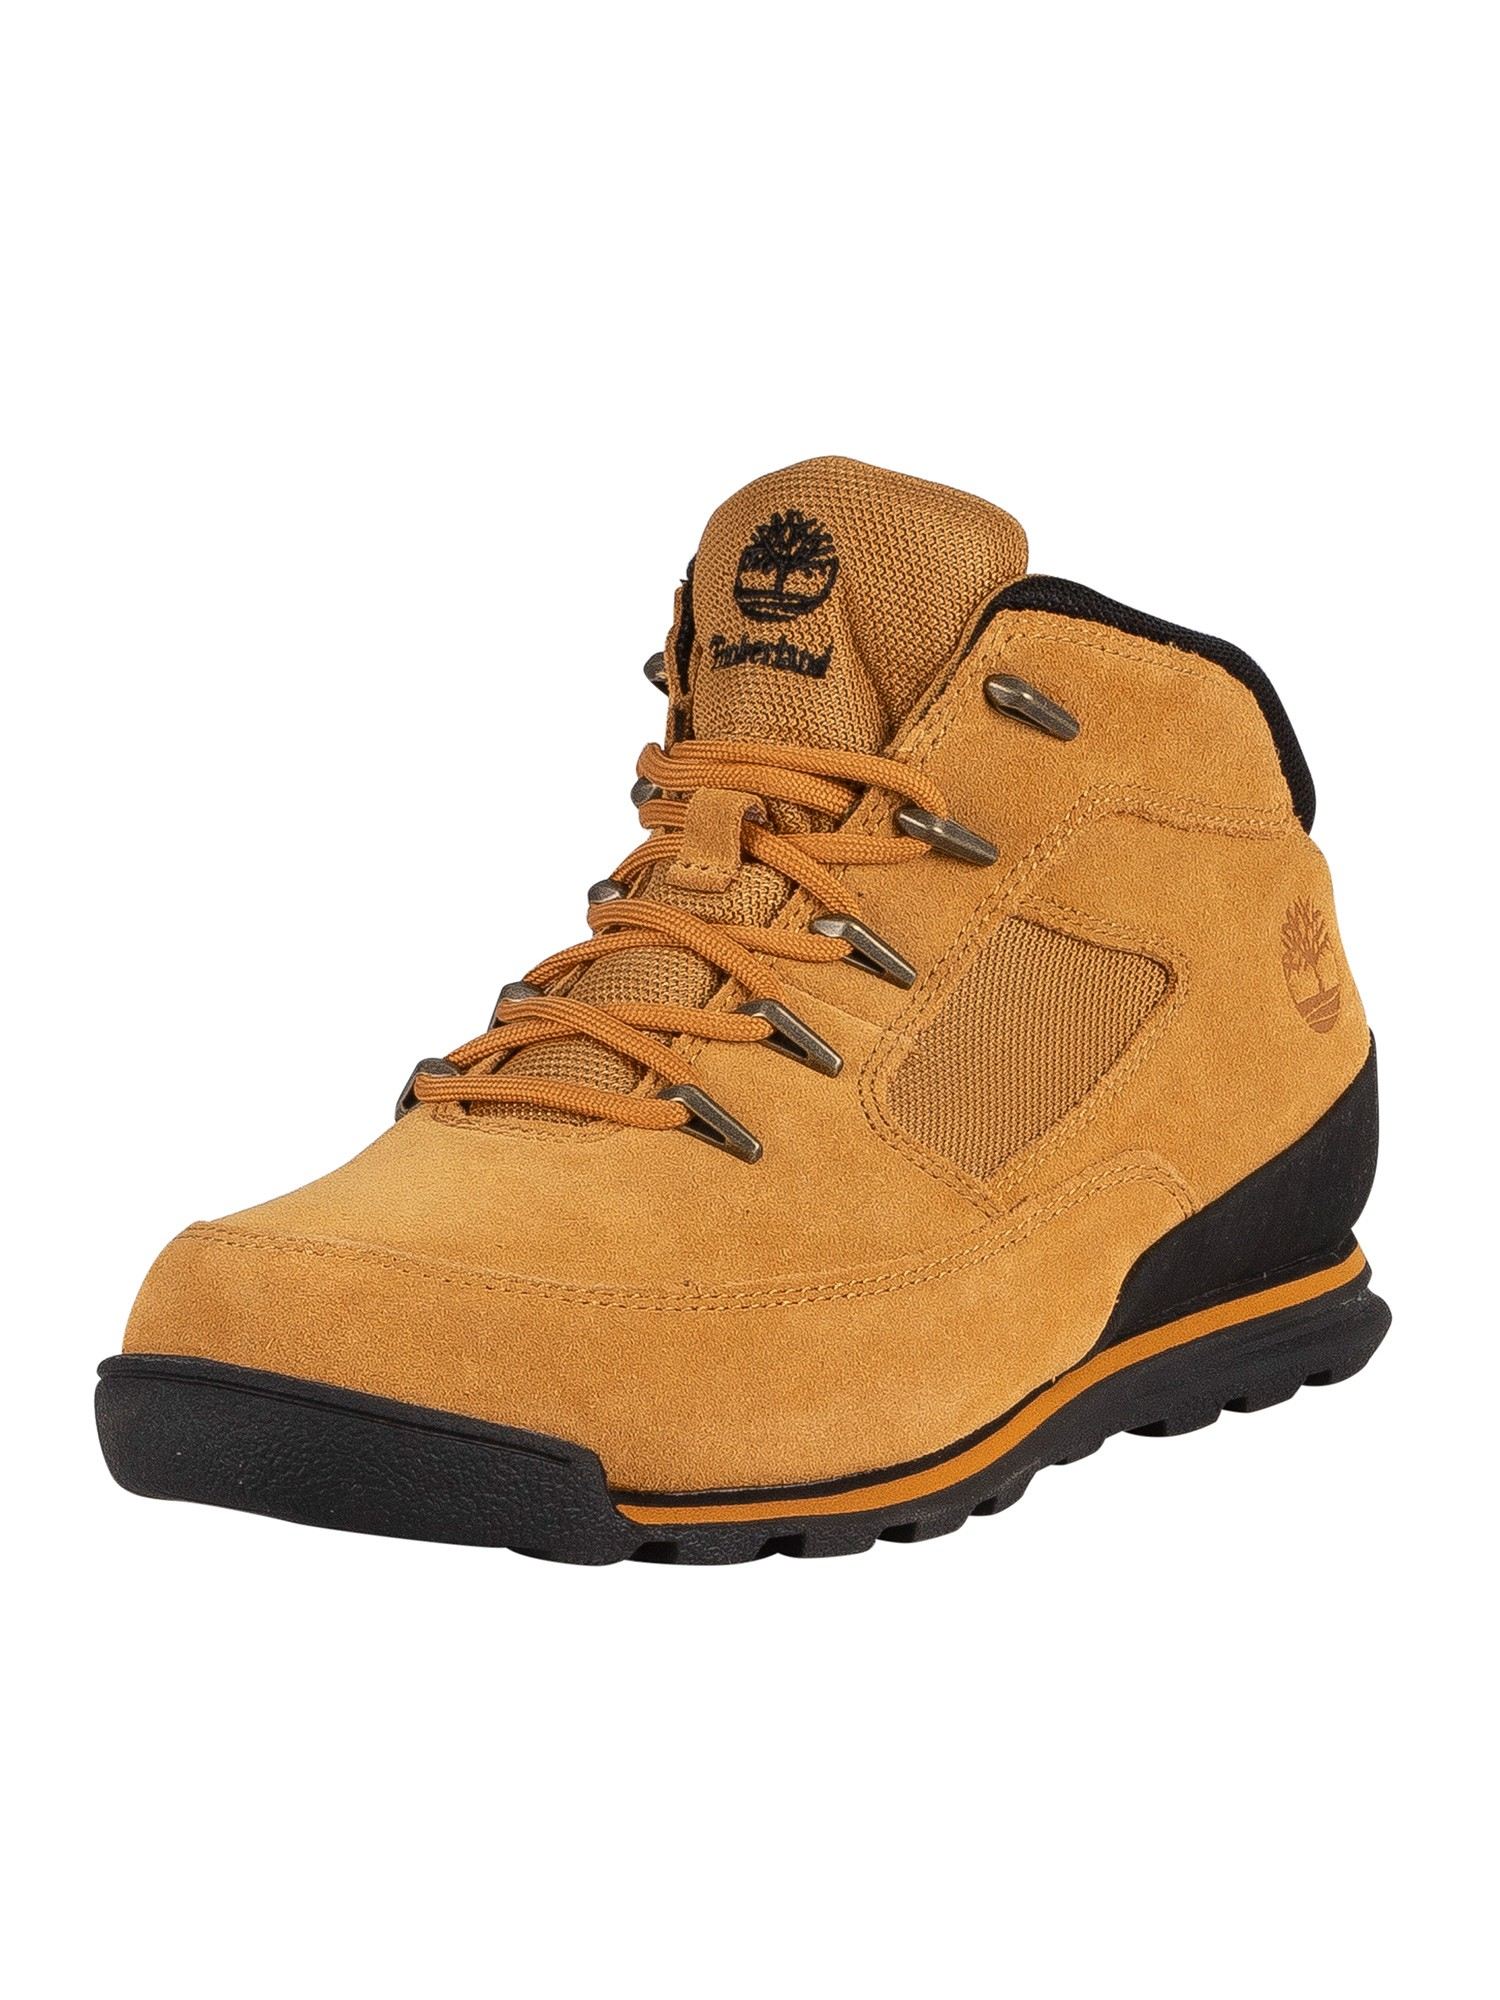 Euro Rock Mid Hiker Suede Boots